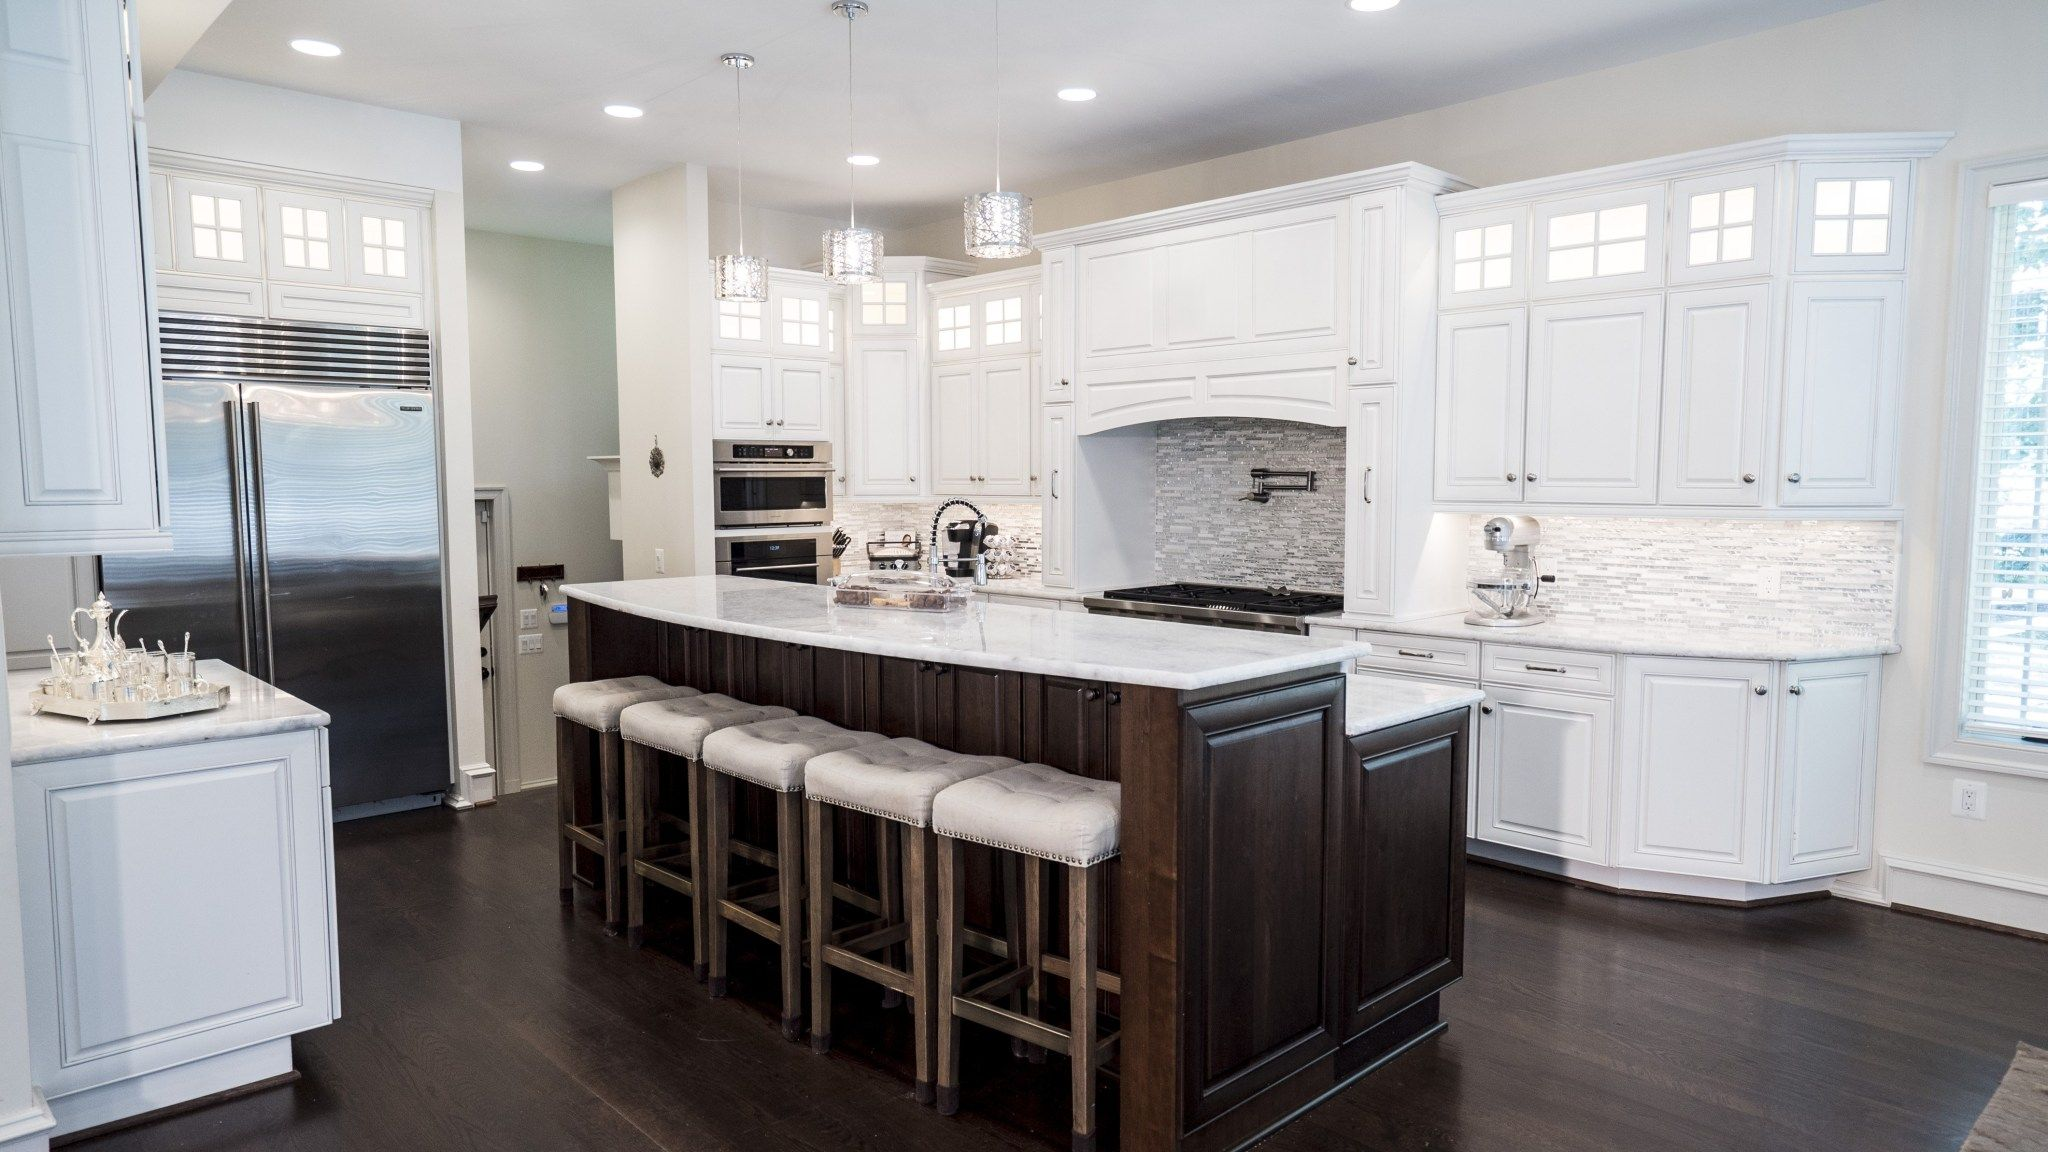 Kitchen And Bathroom Remodel Stores Near Me